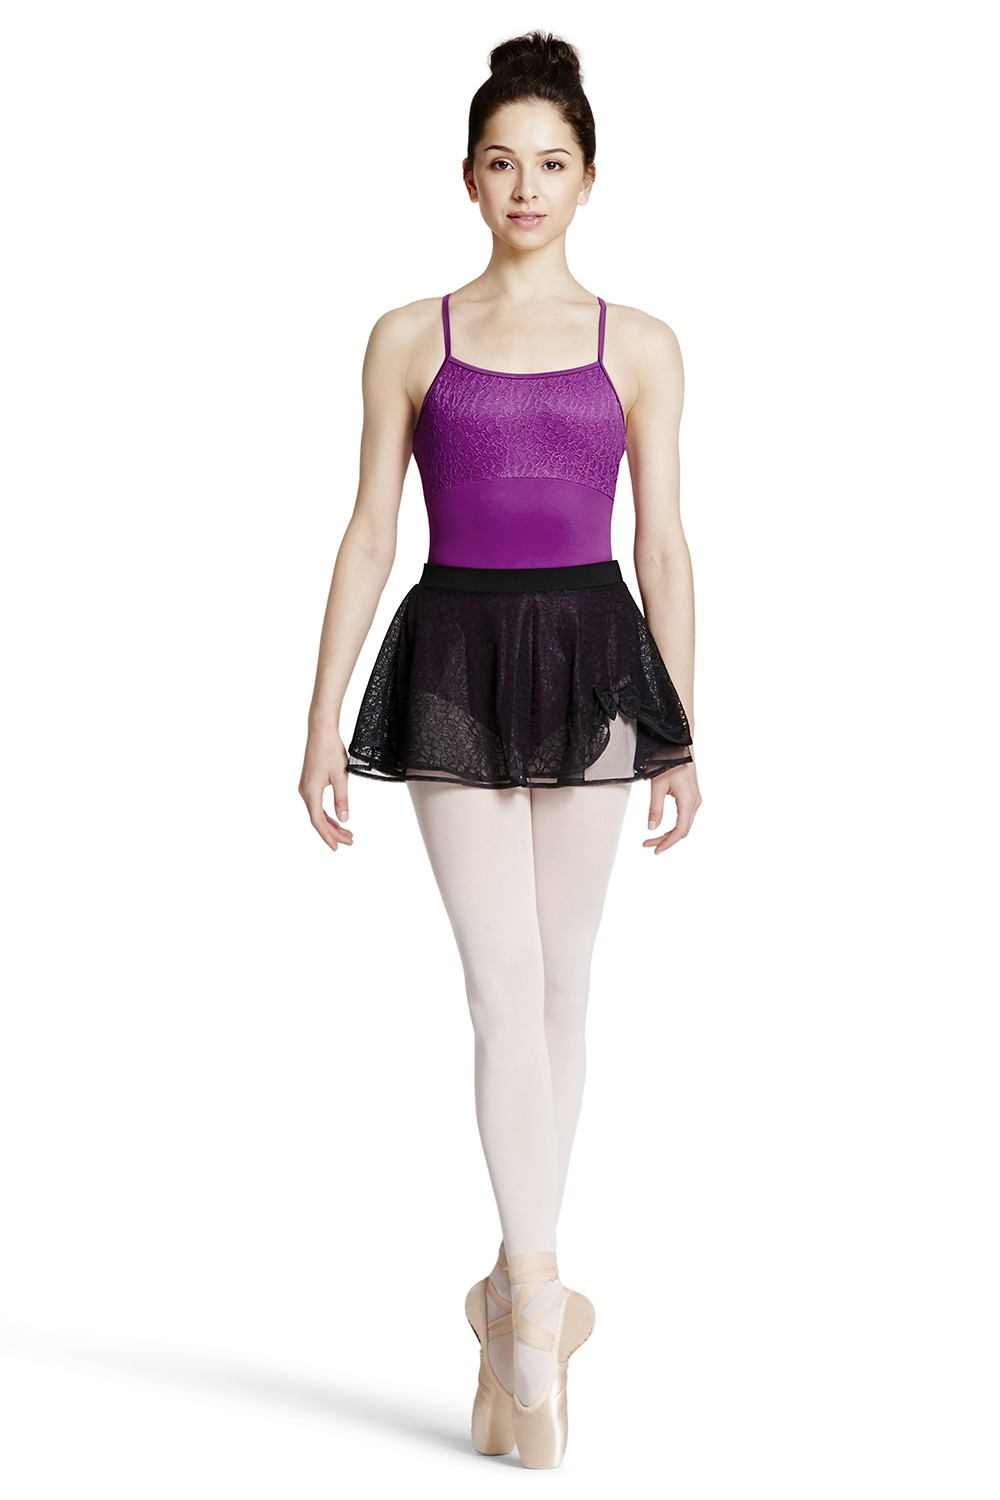 Gonna Floreale In Pizzo Women's Dance Skirts